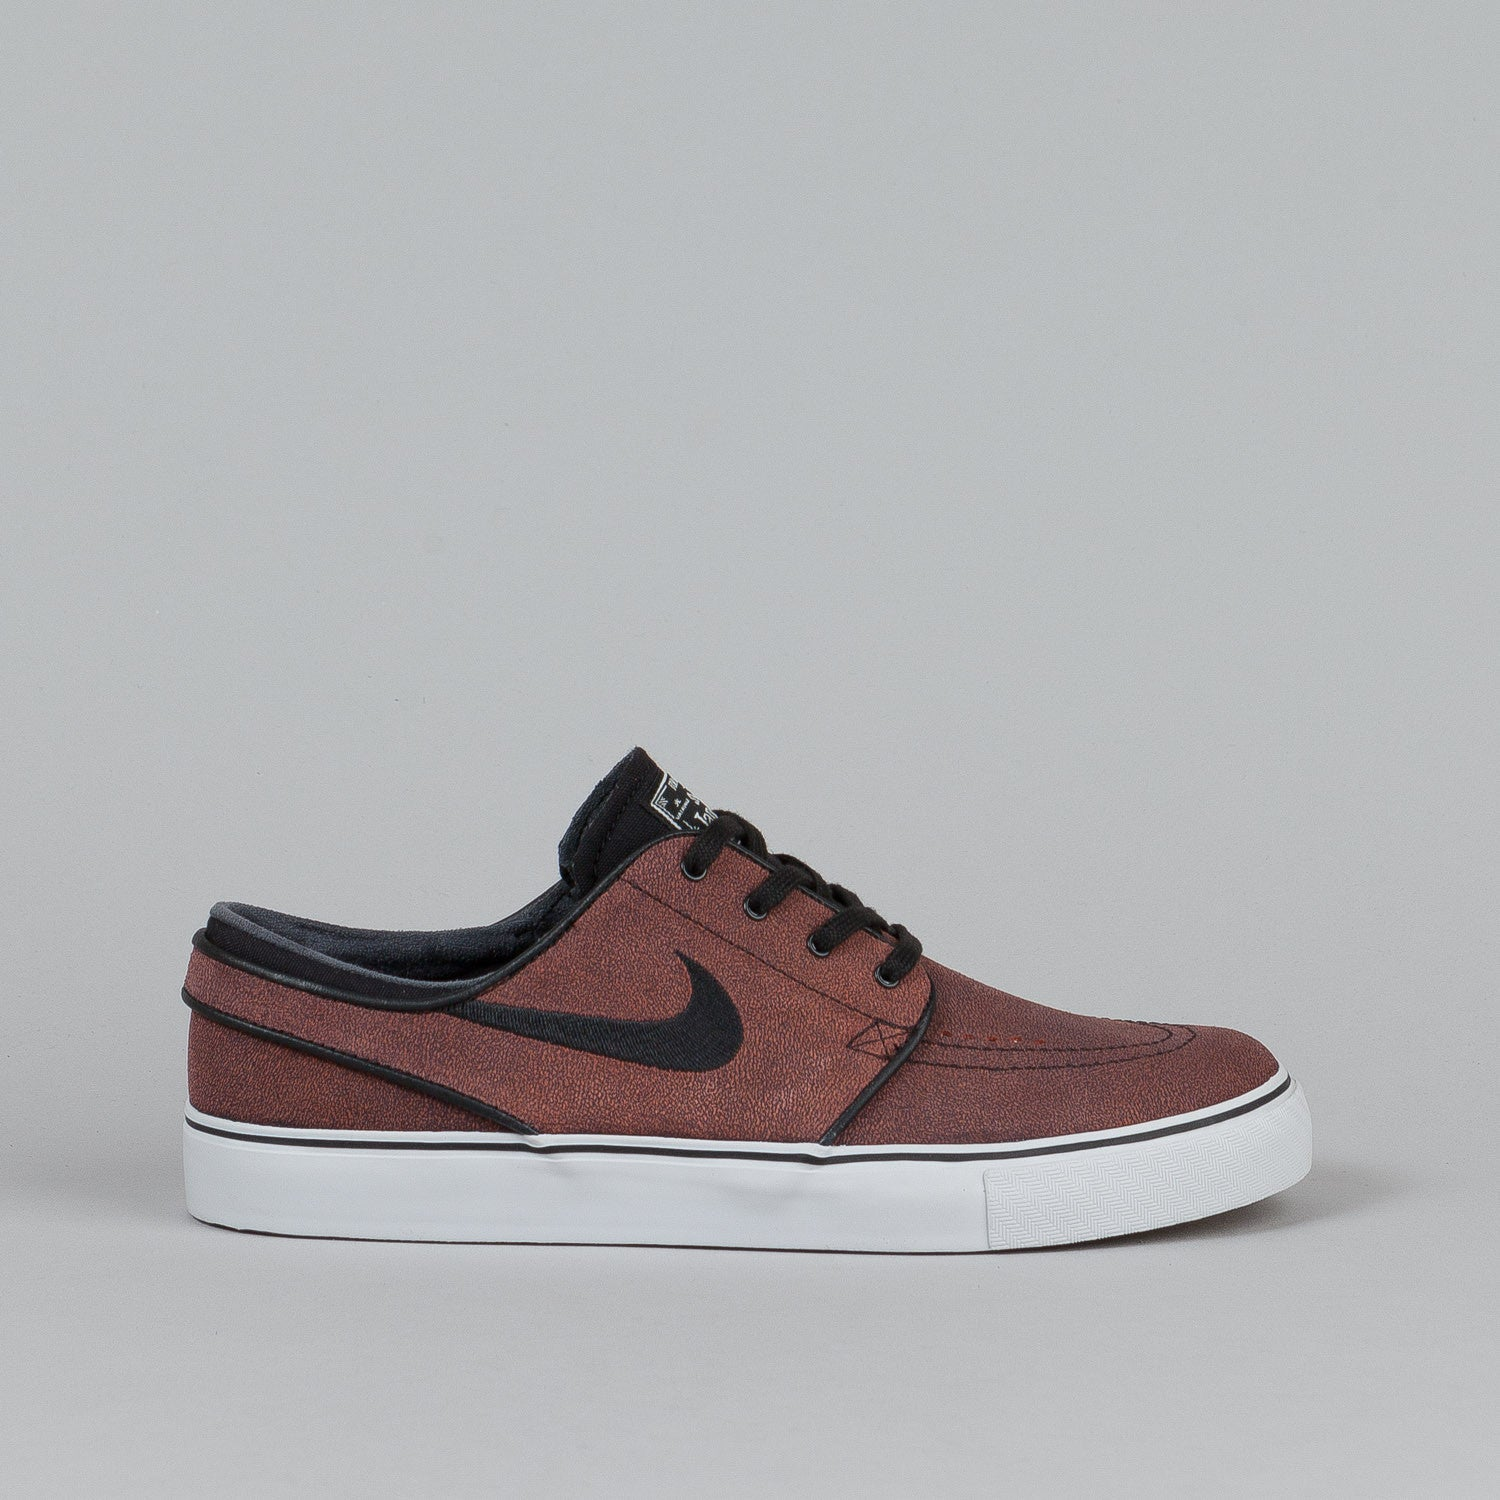 Nike SB Stefan Janoski Team Orange/Black